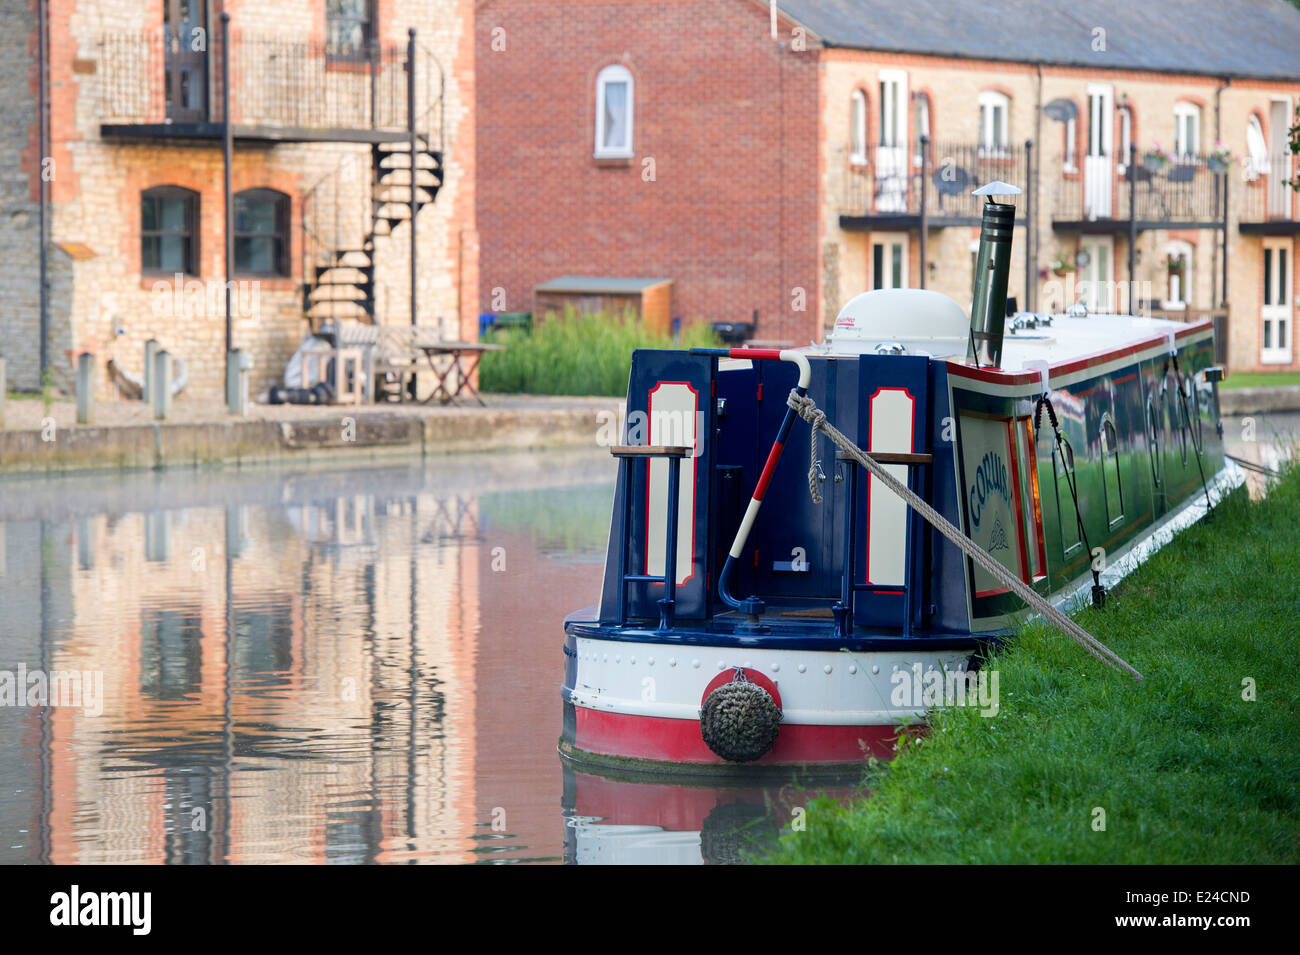 Narrowboat and house reflections on the Grand Union canal. Cosgrove, England - Stock Image